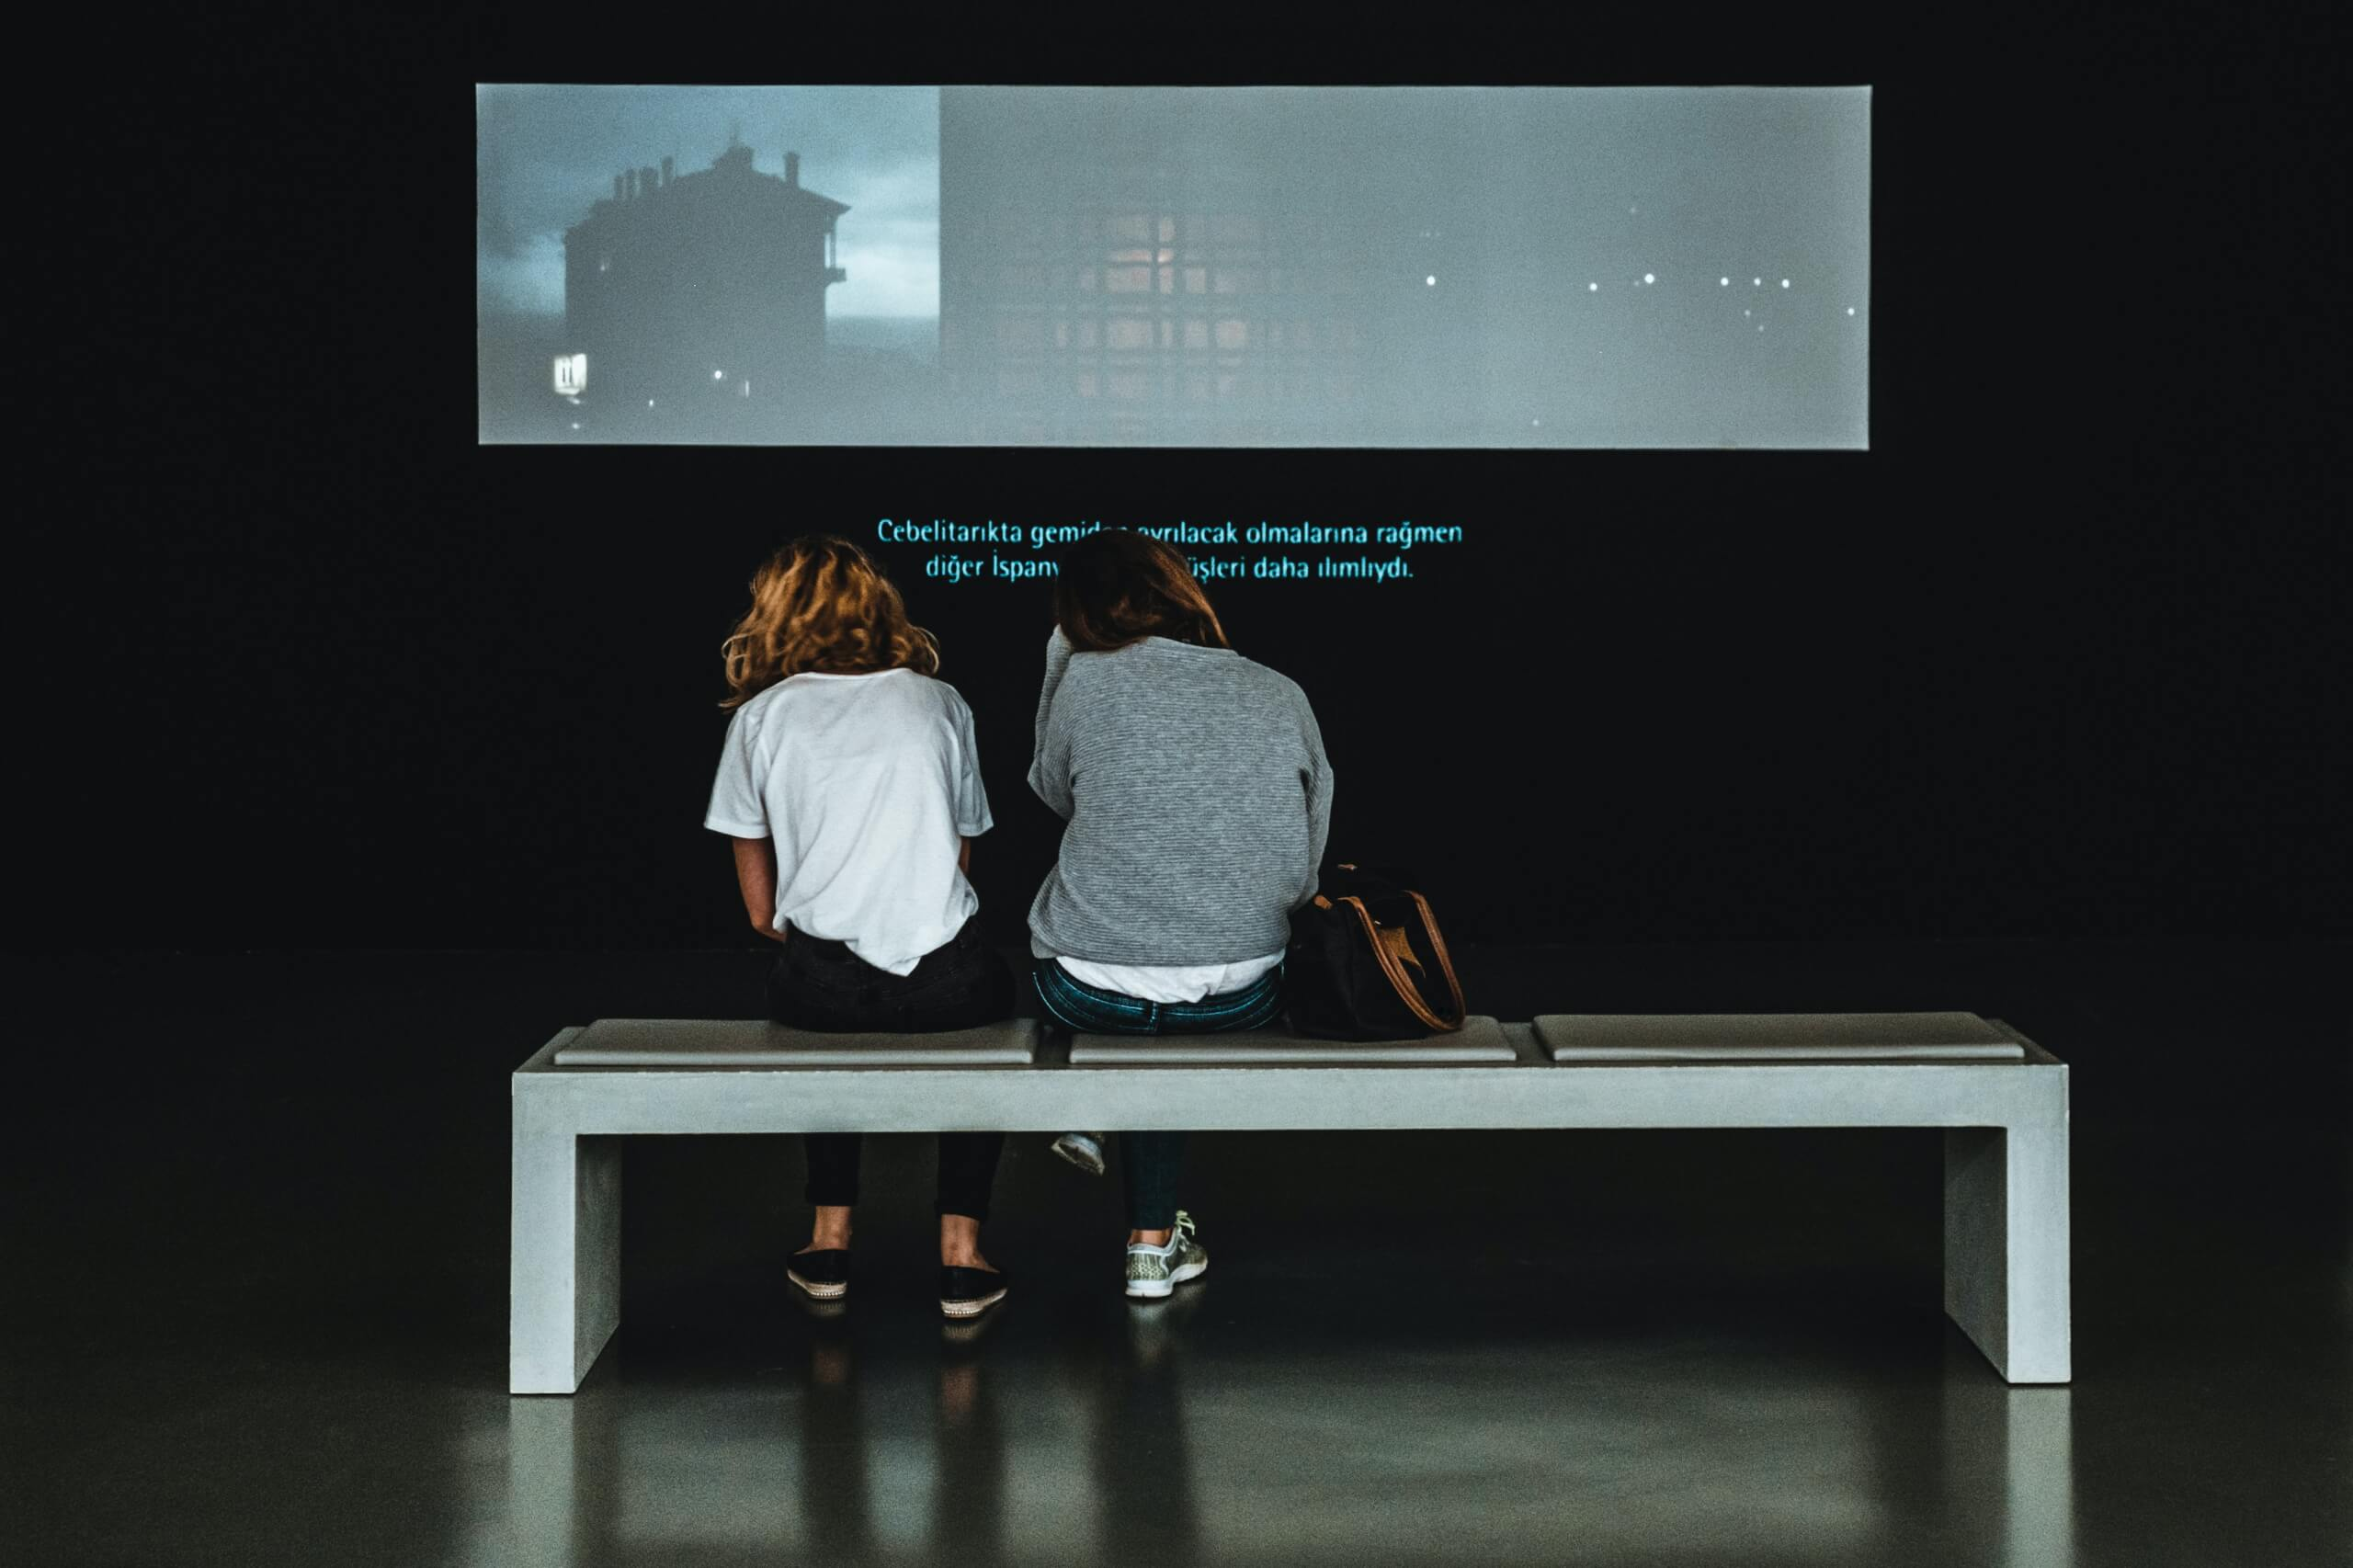 Audiovisual translation Two women watching a film at a museum with subtitles at the bottom of the screen